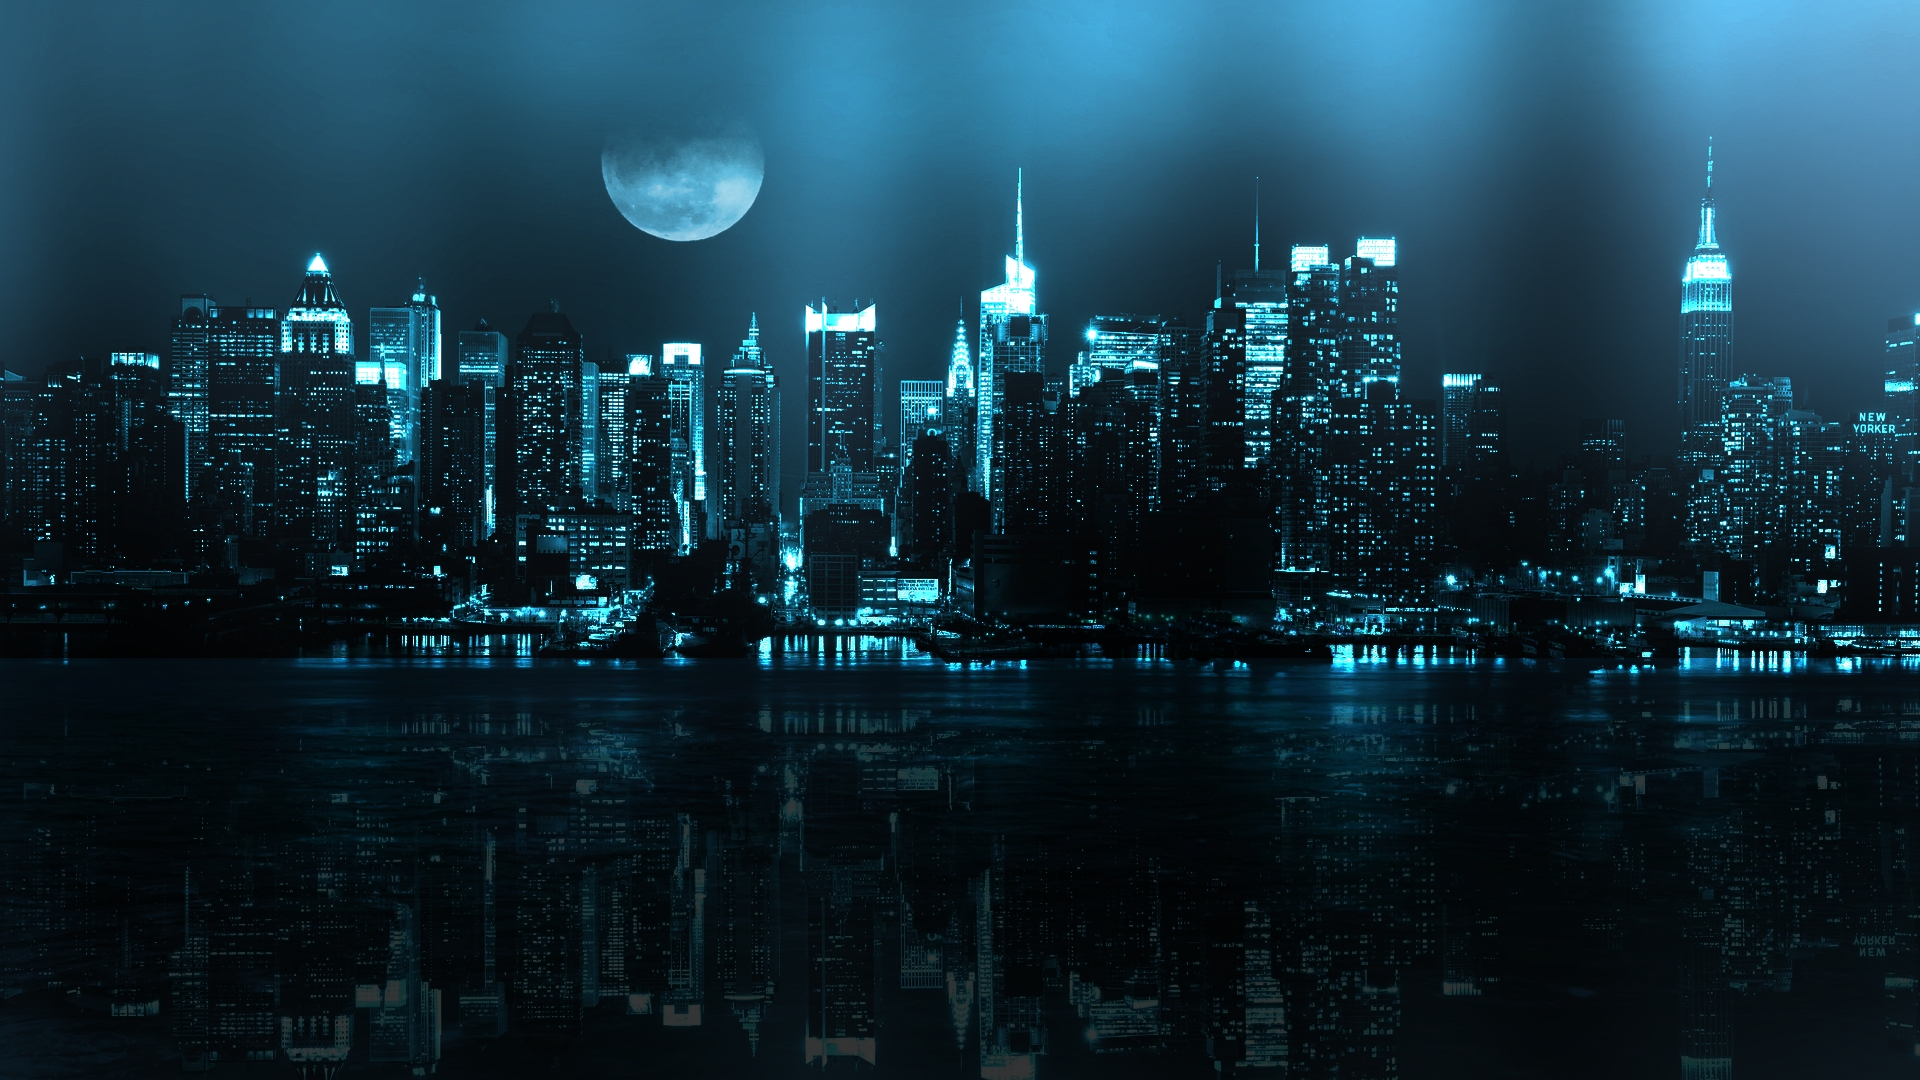 Cool Wallpapers 1920x1080 with City Light at Night HD Wallpapers for 1920x1080